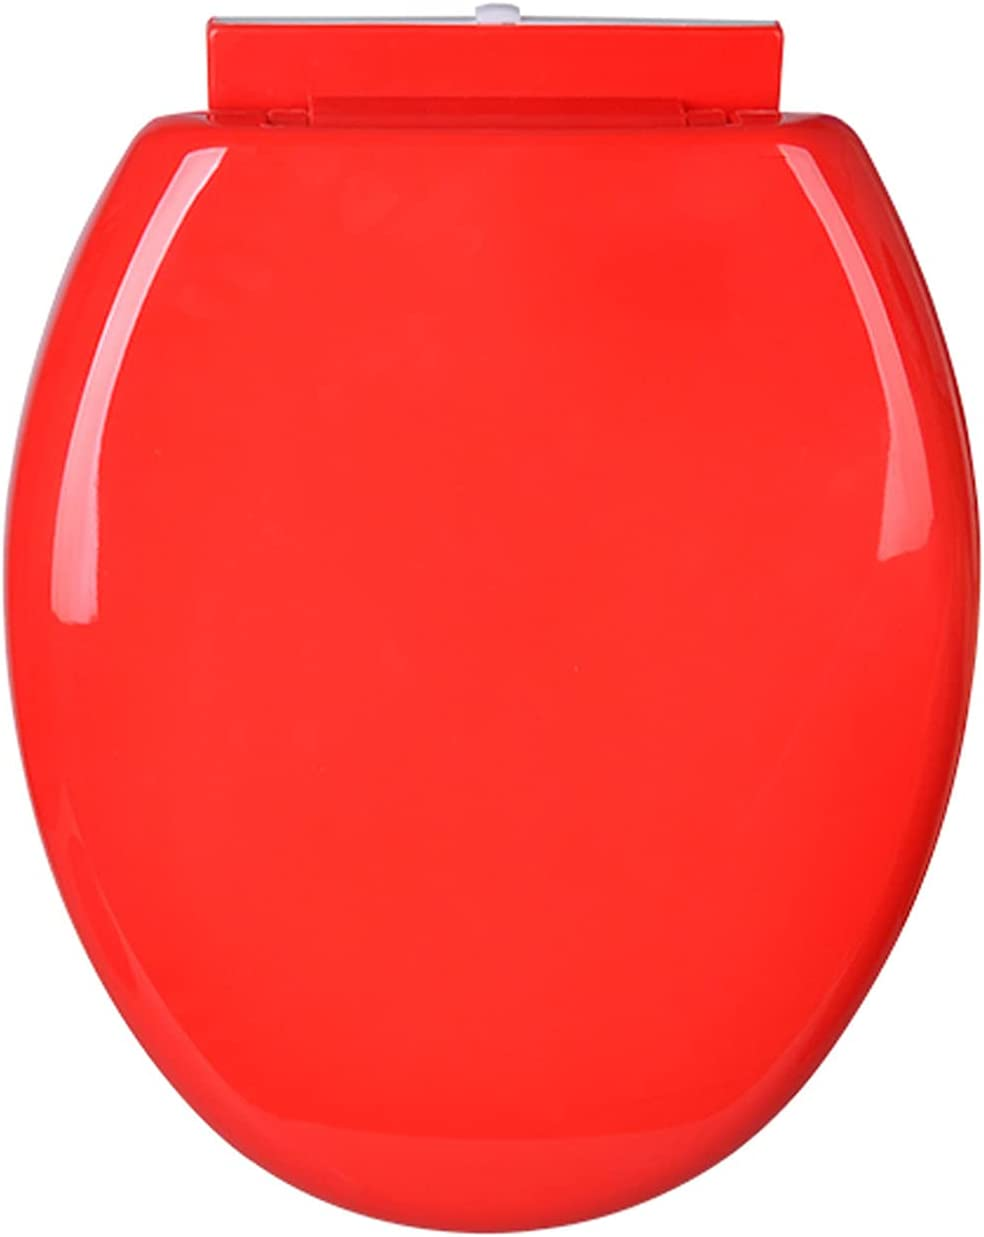 WEITONG Color Toilet Seat, Round Toilet Seat Slow Close,and Removes Easy for Cleaning, Thicken Toilet Seat,Loads Up to 400 Lb (Yellow, Red, Green, Blue, Purple)